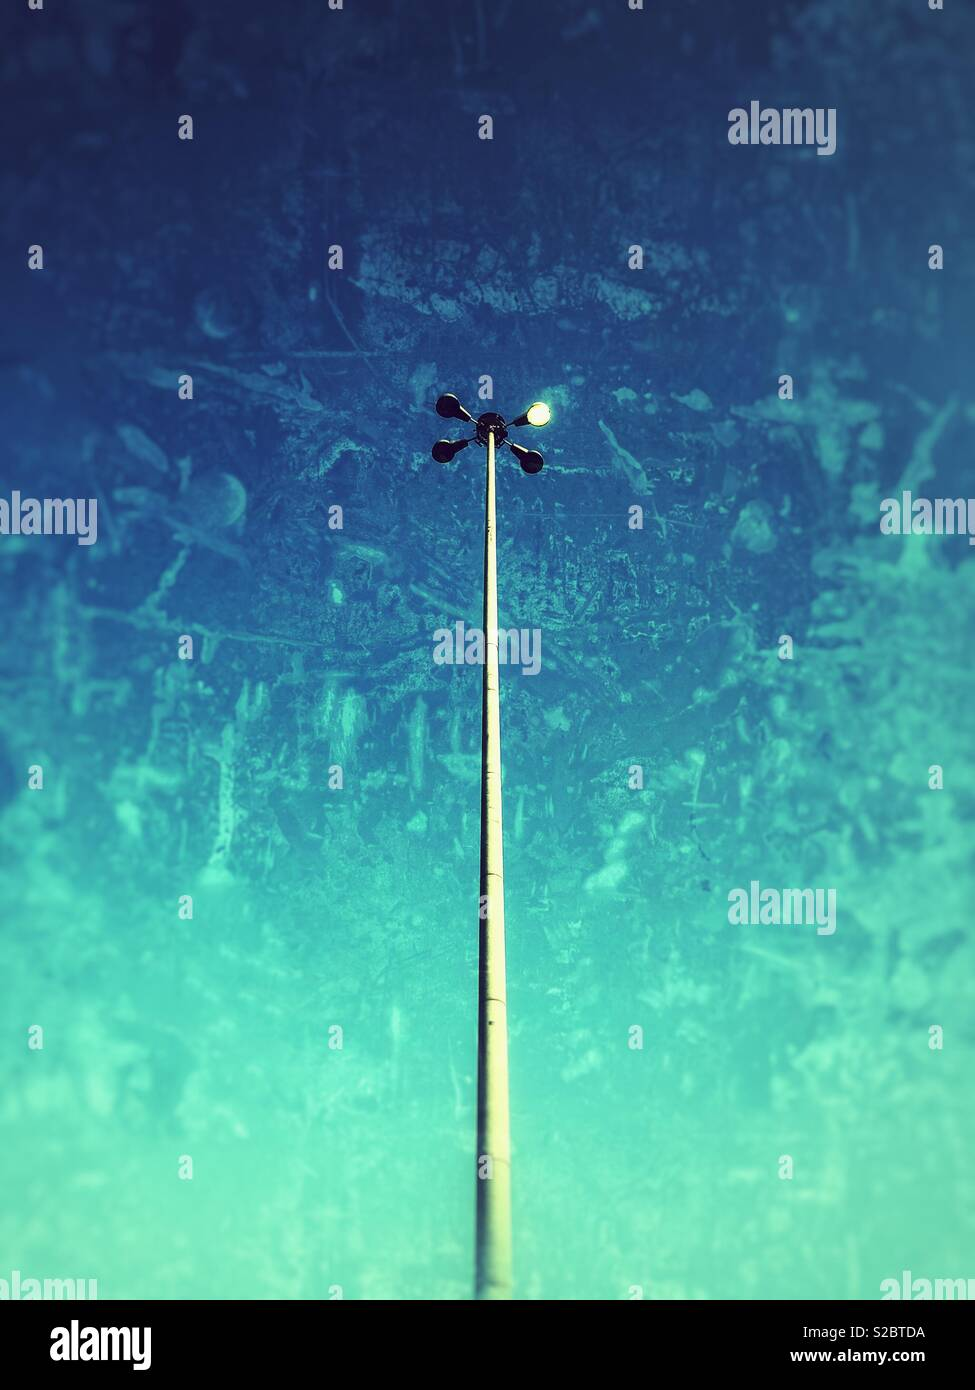 Light pole with grunge effect. - Stock Image